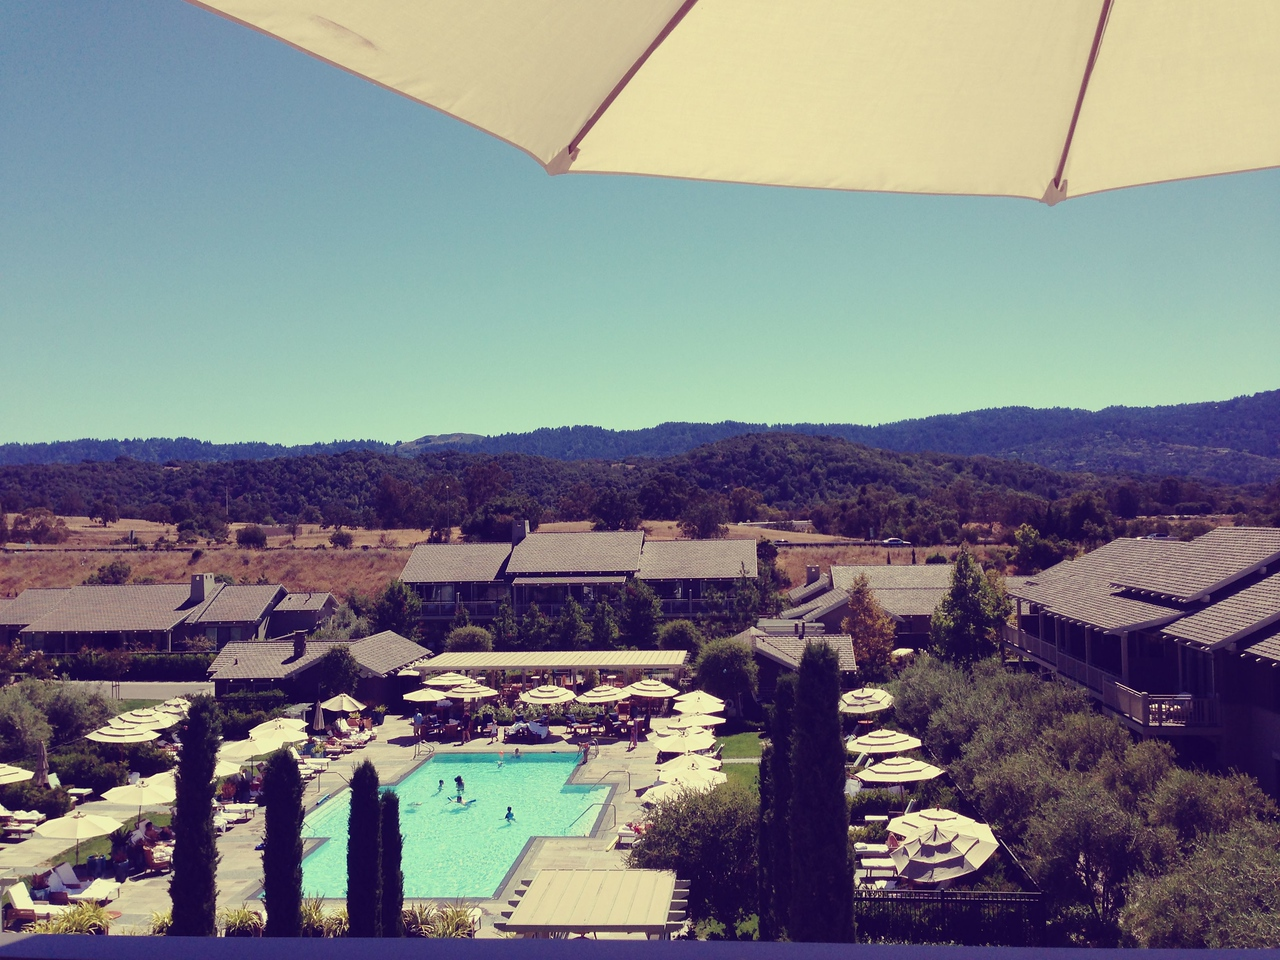 My perch for the day. The Rosewood. PA.